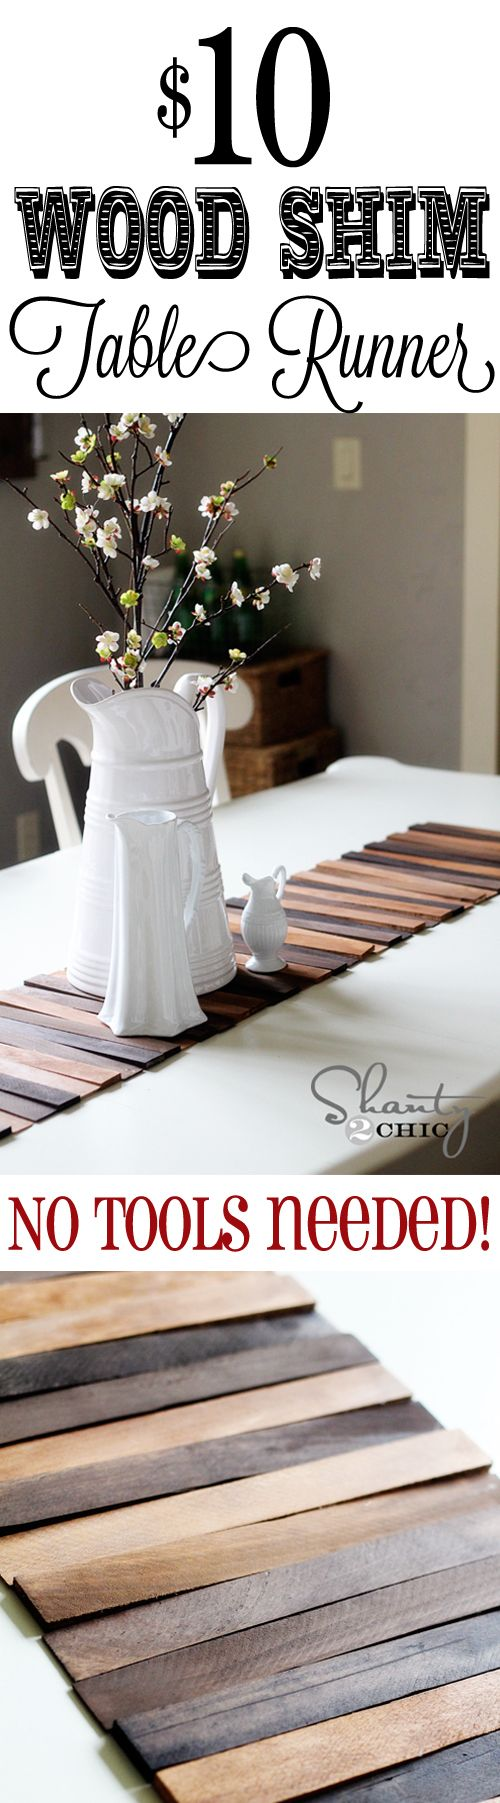 Easy DIY Wood Table Runner... Just need a hot glue gun, a drop cloth, varnish, and wood shims from the hardware store!!!